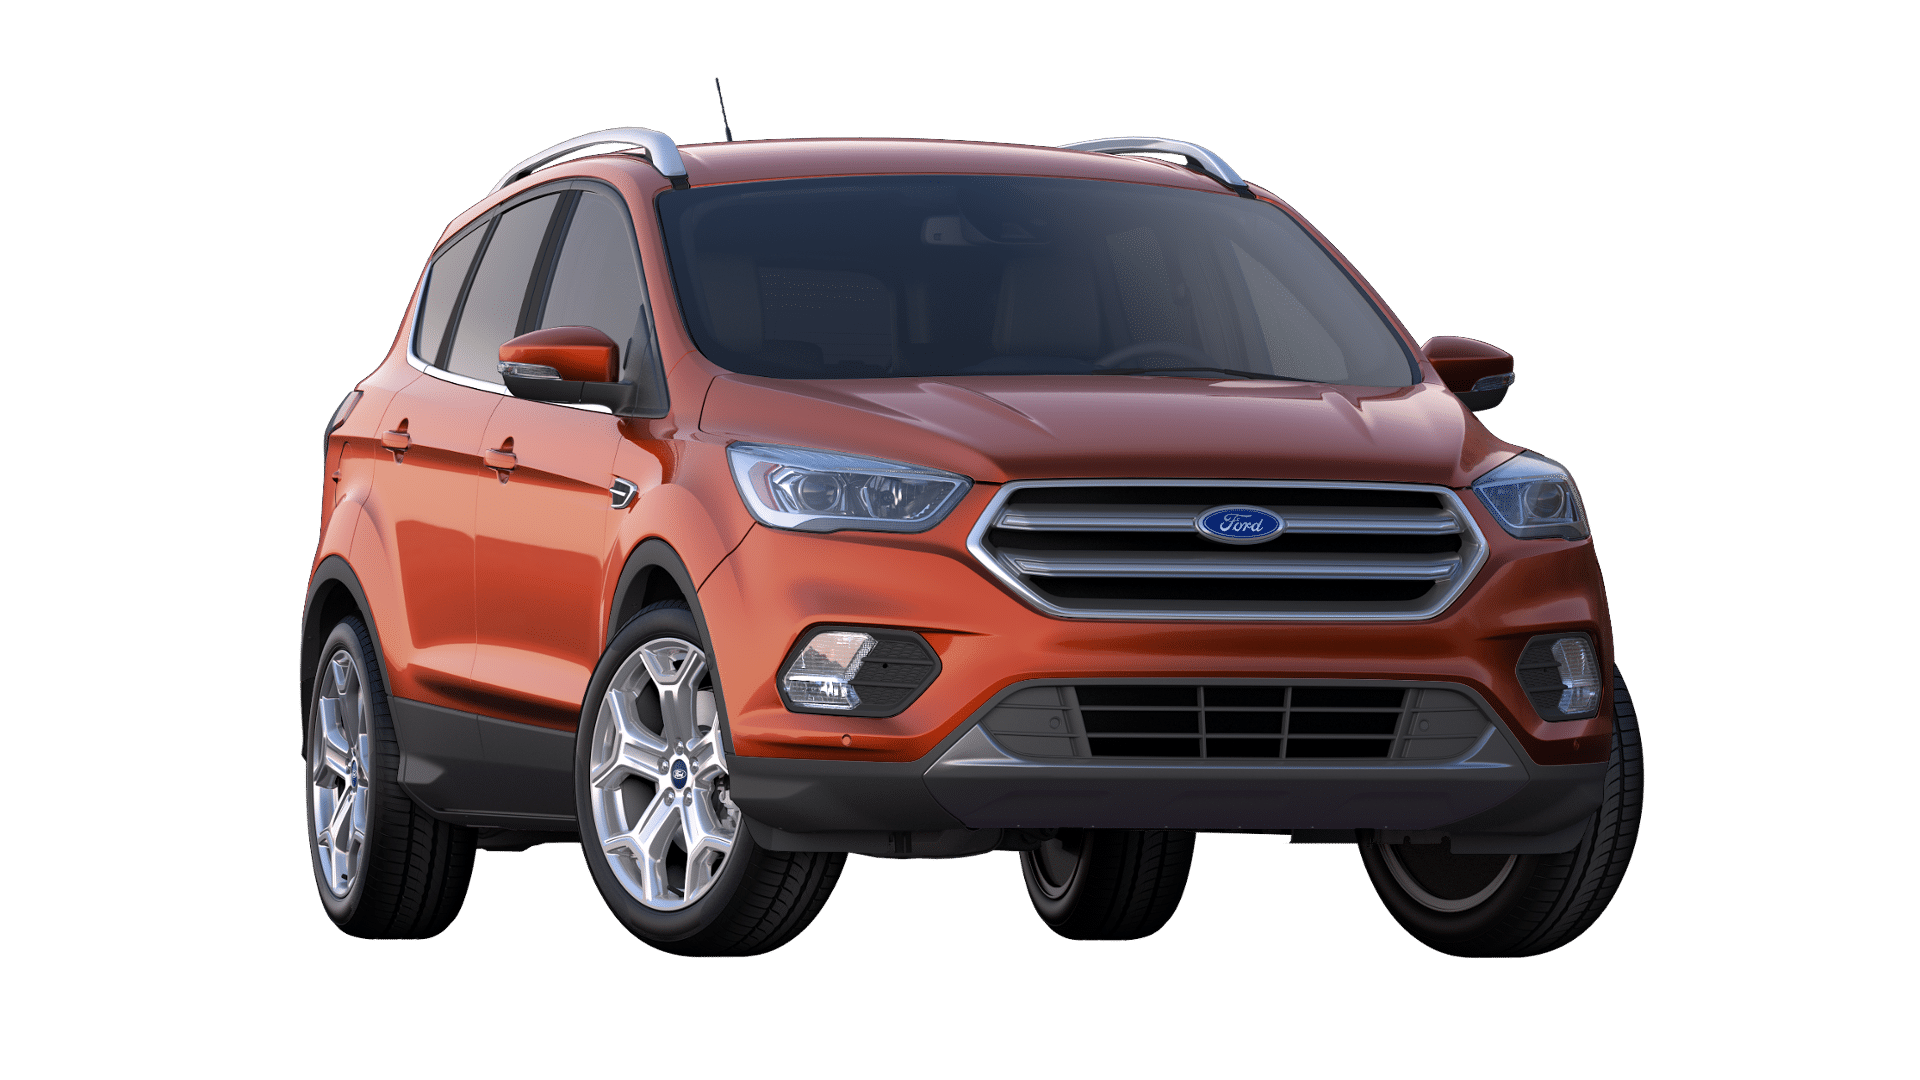 2019 Ford Escape Sedona Orange Exterior Color